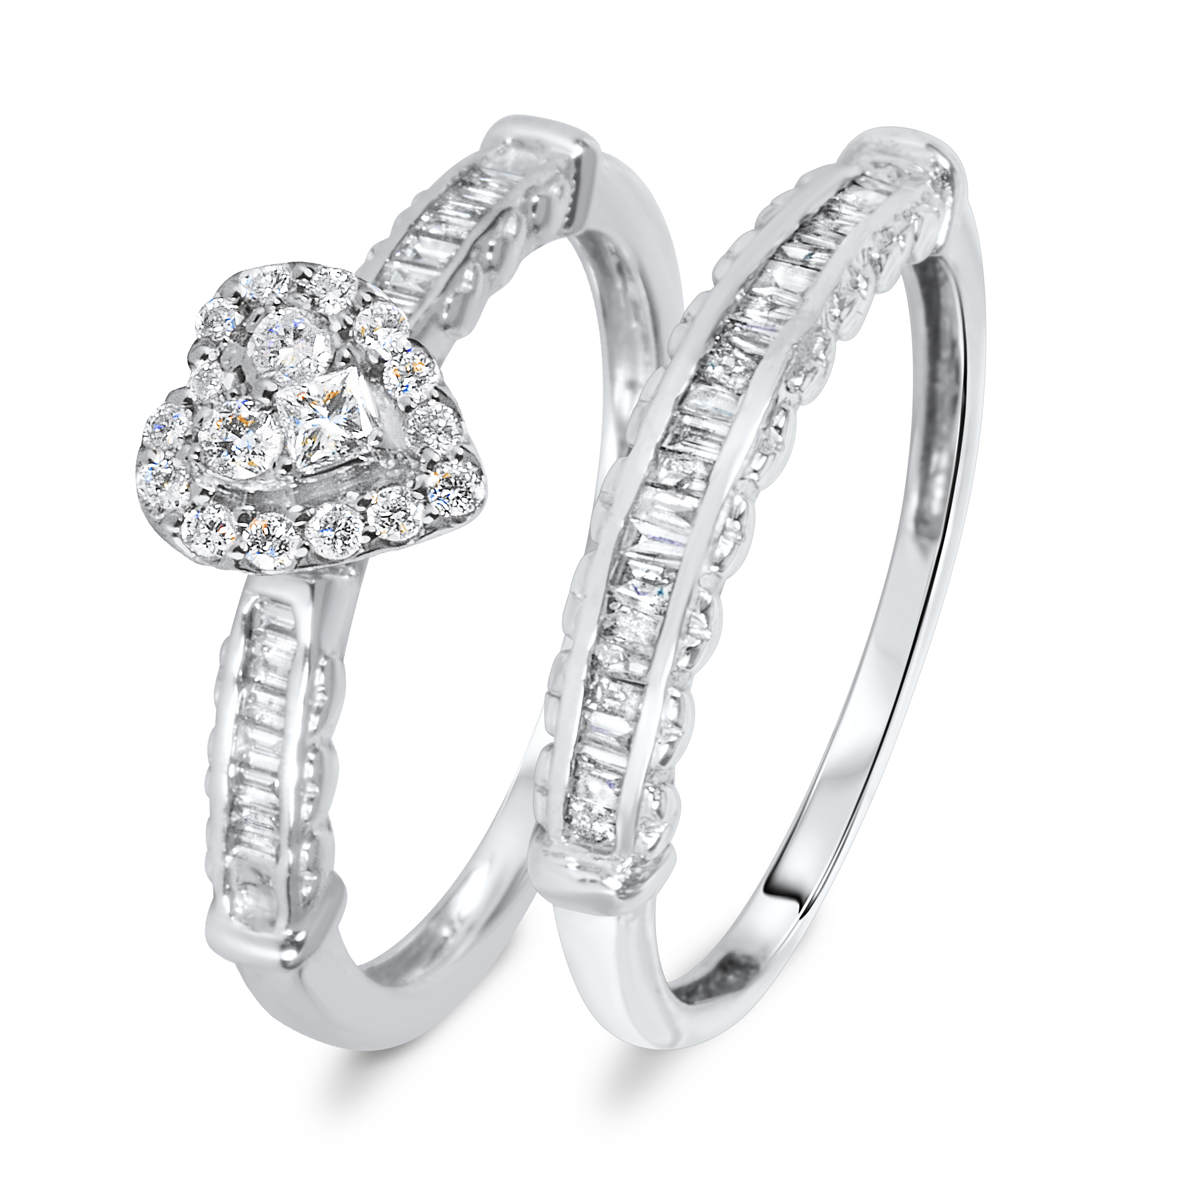 2/3 CT. T.W. Diamond Women's Bridal Wedding Ring Set 14K White Gold